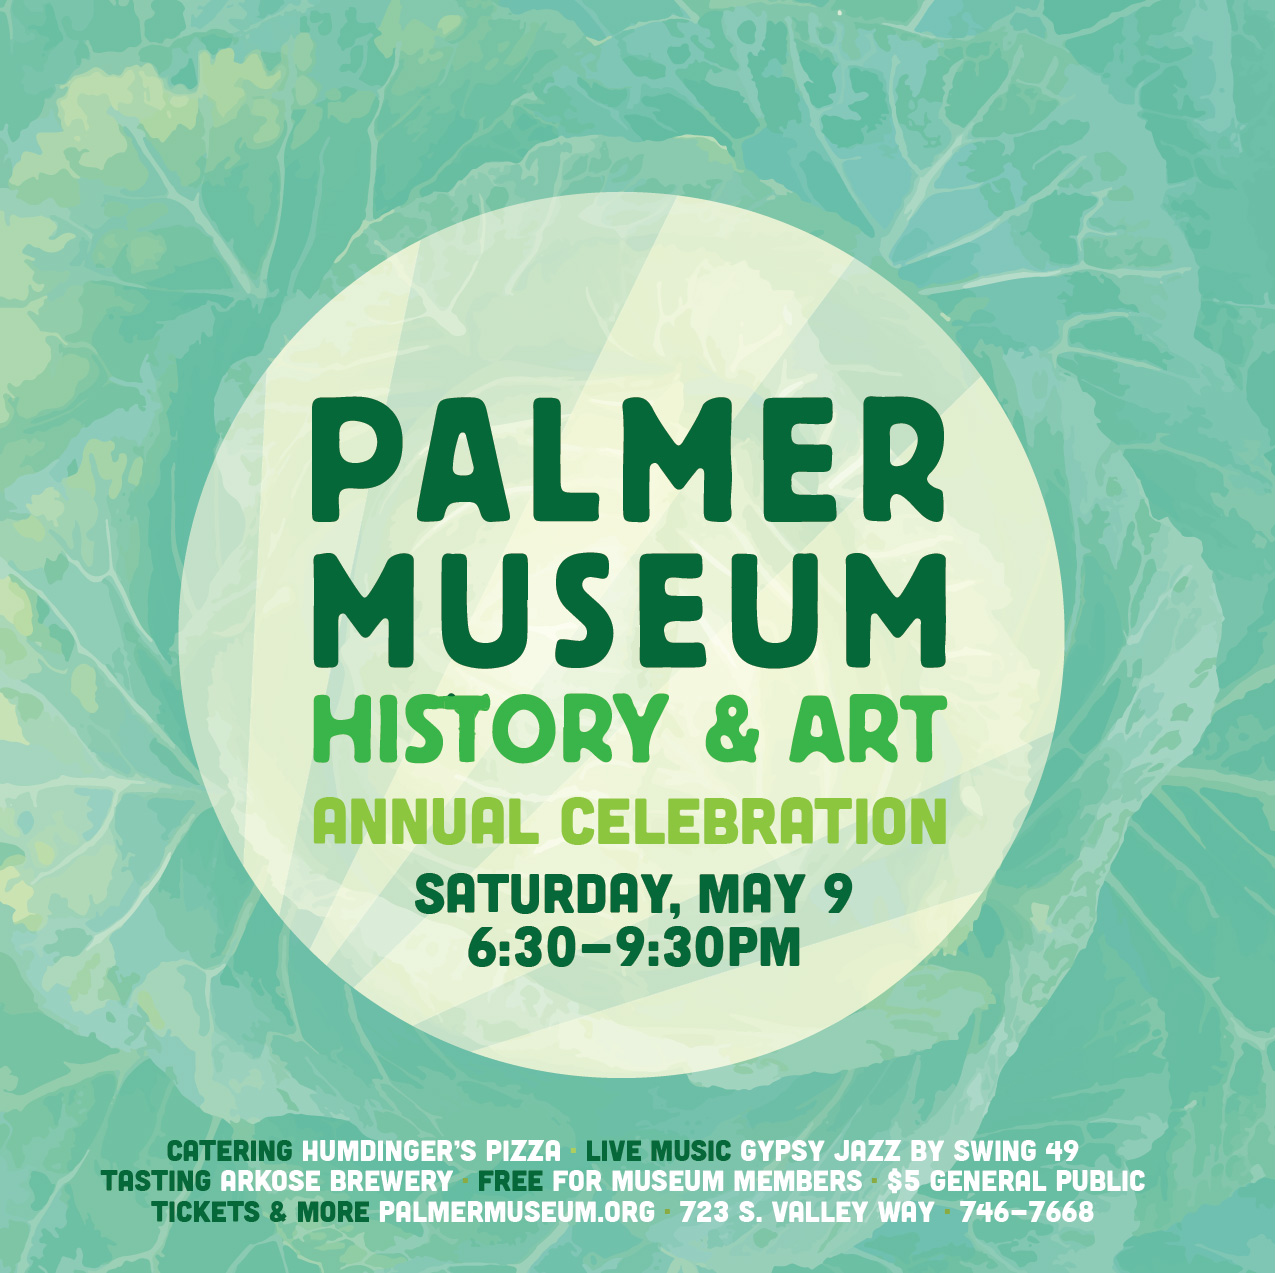 Day 259: Palmer Museum Annual Celebration